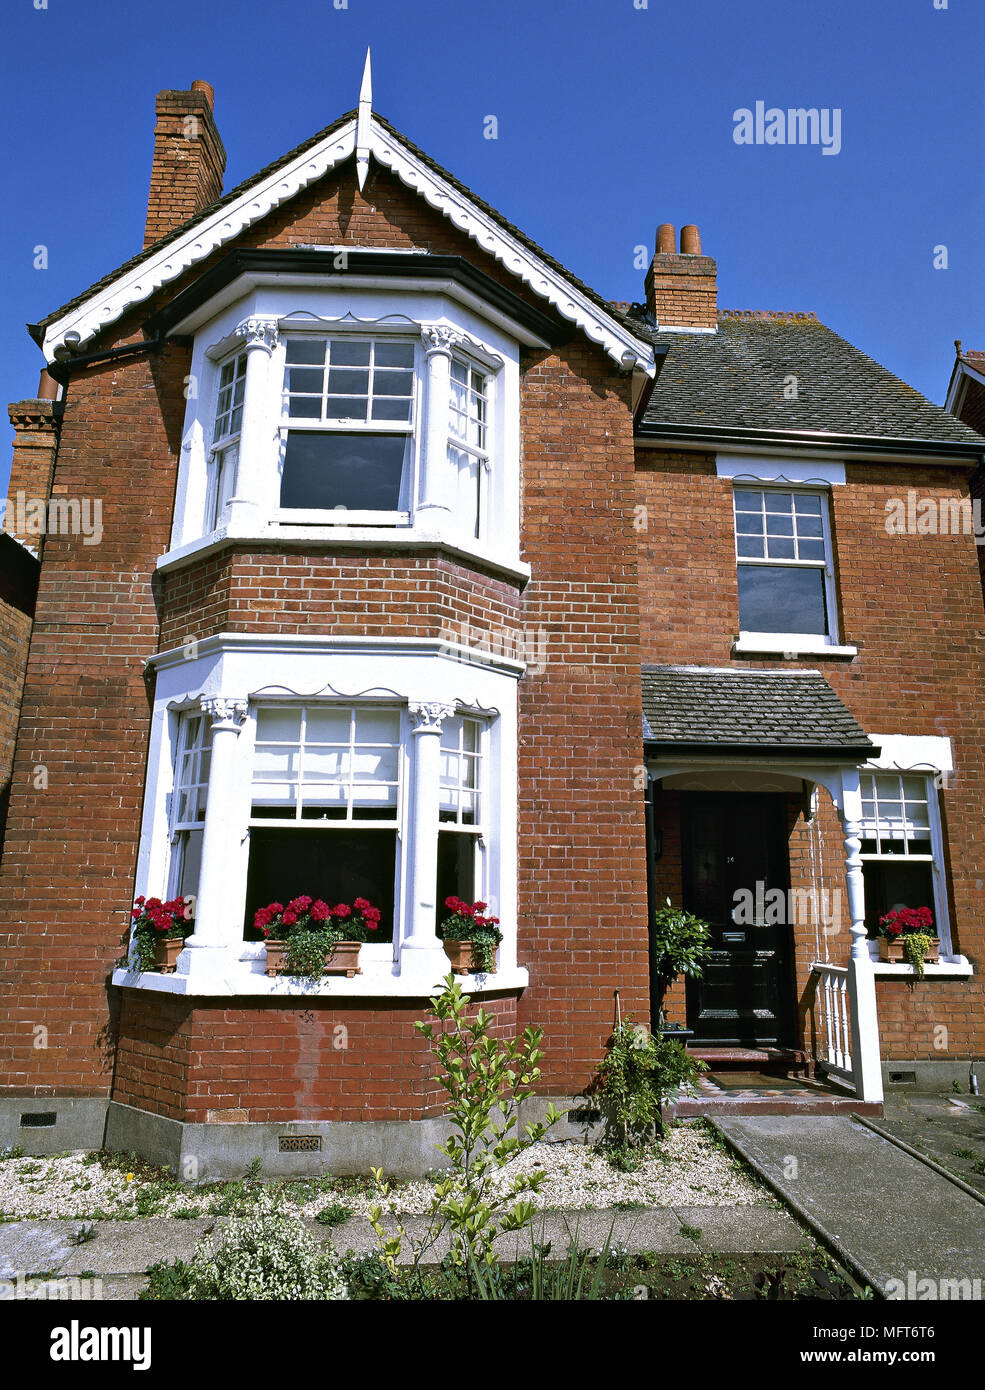 Exterior Victorian Red Brick Town House Bay Windows Exteriors Houses Architecture Stock Photo Alamy